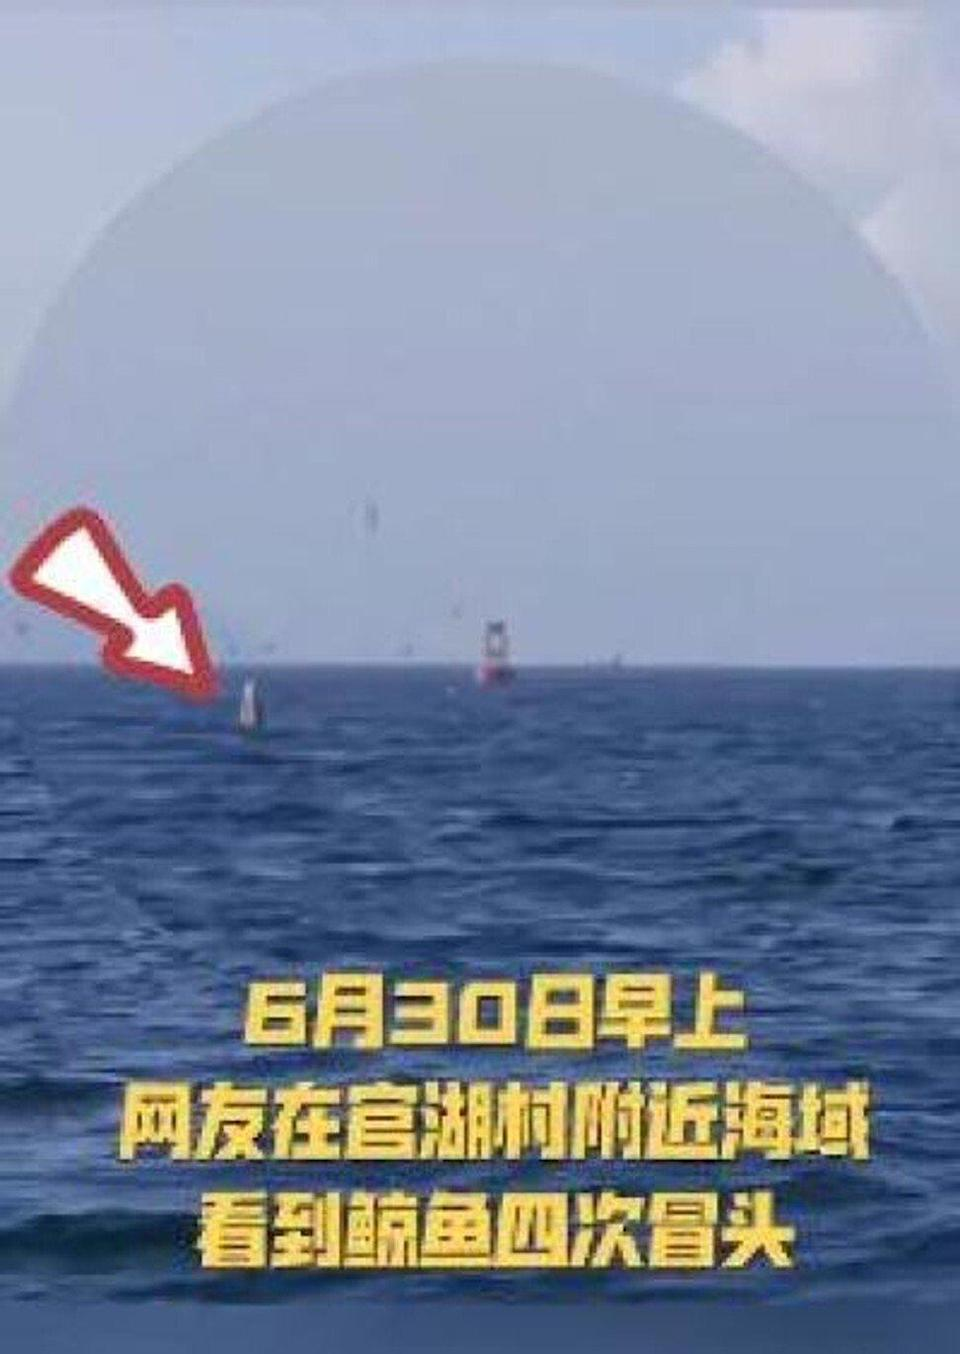 Shenzhen residents said they saw the whale close to the coast in the Dapeng district. Photo: Baidu